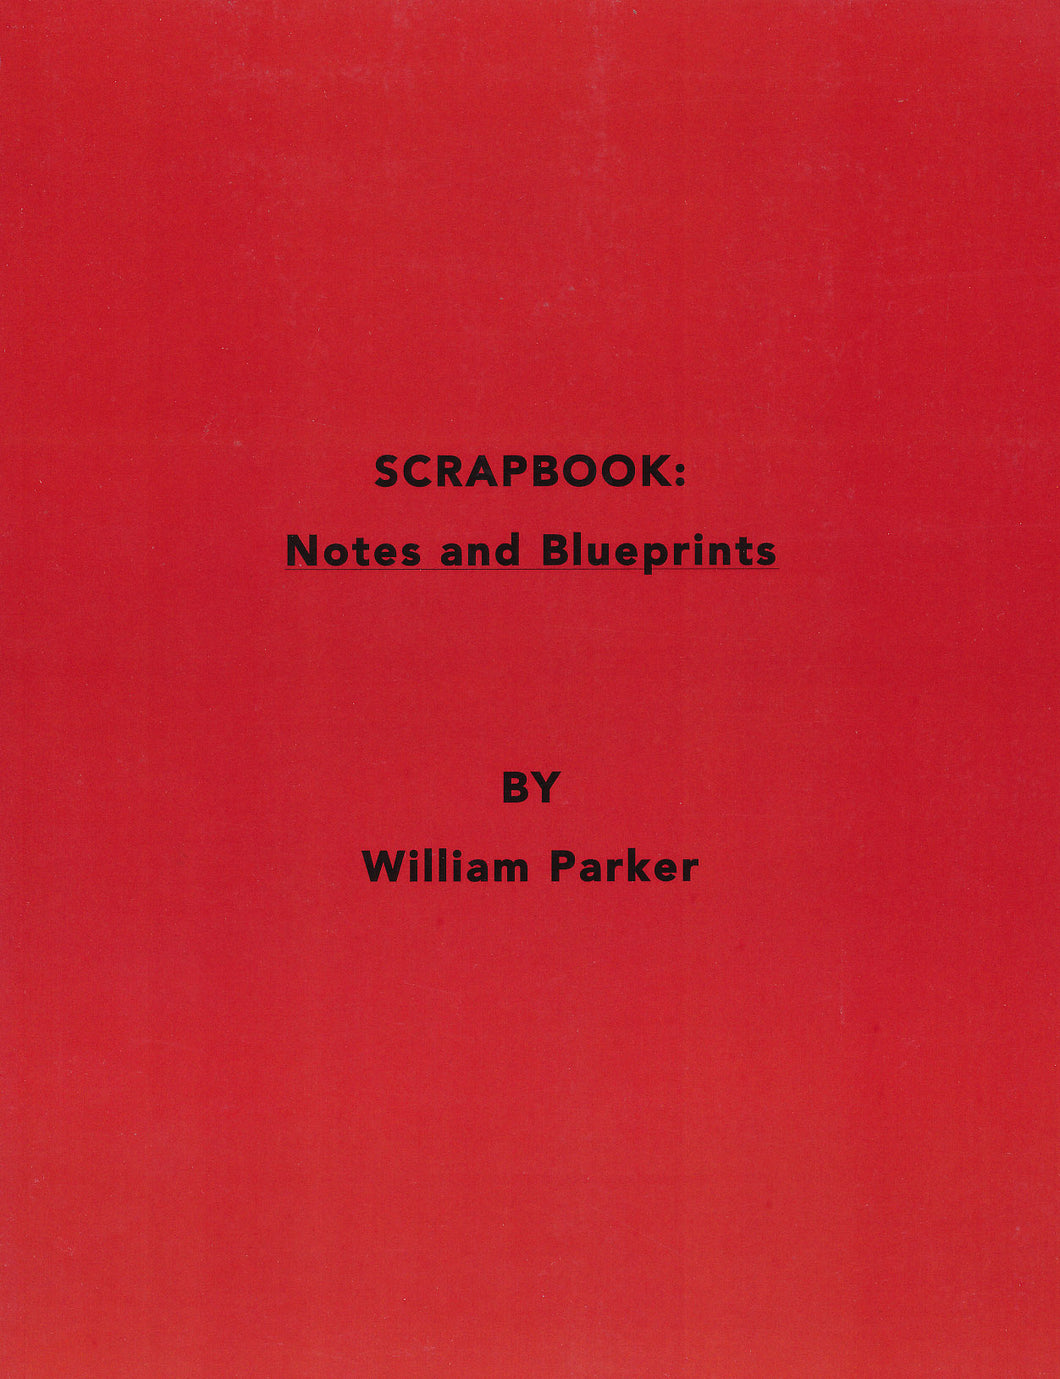 William Parker – SCRAPBOOK: Notes and Blueprints